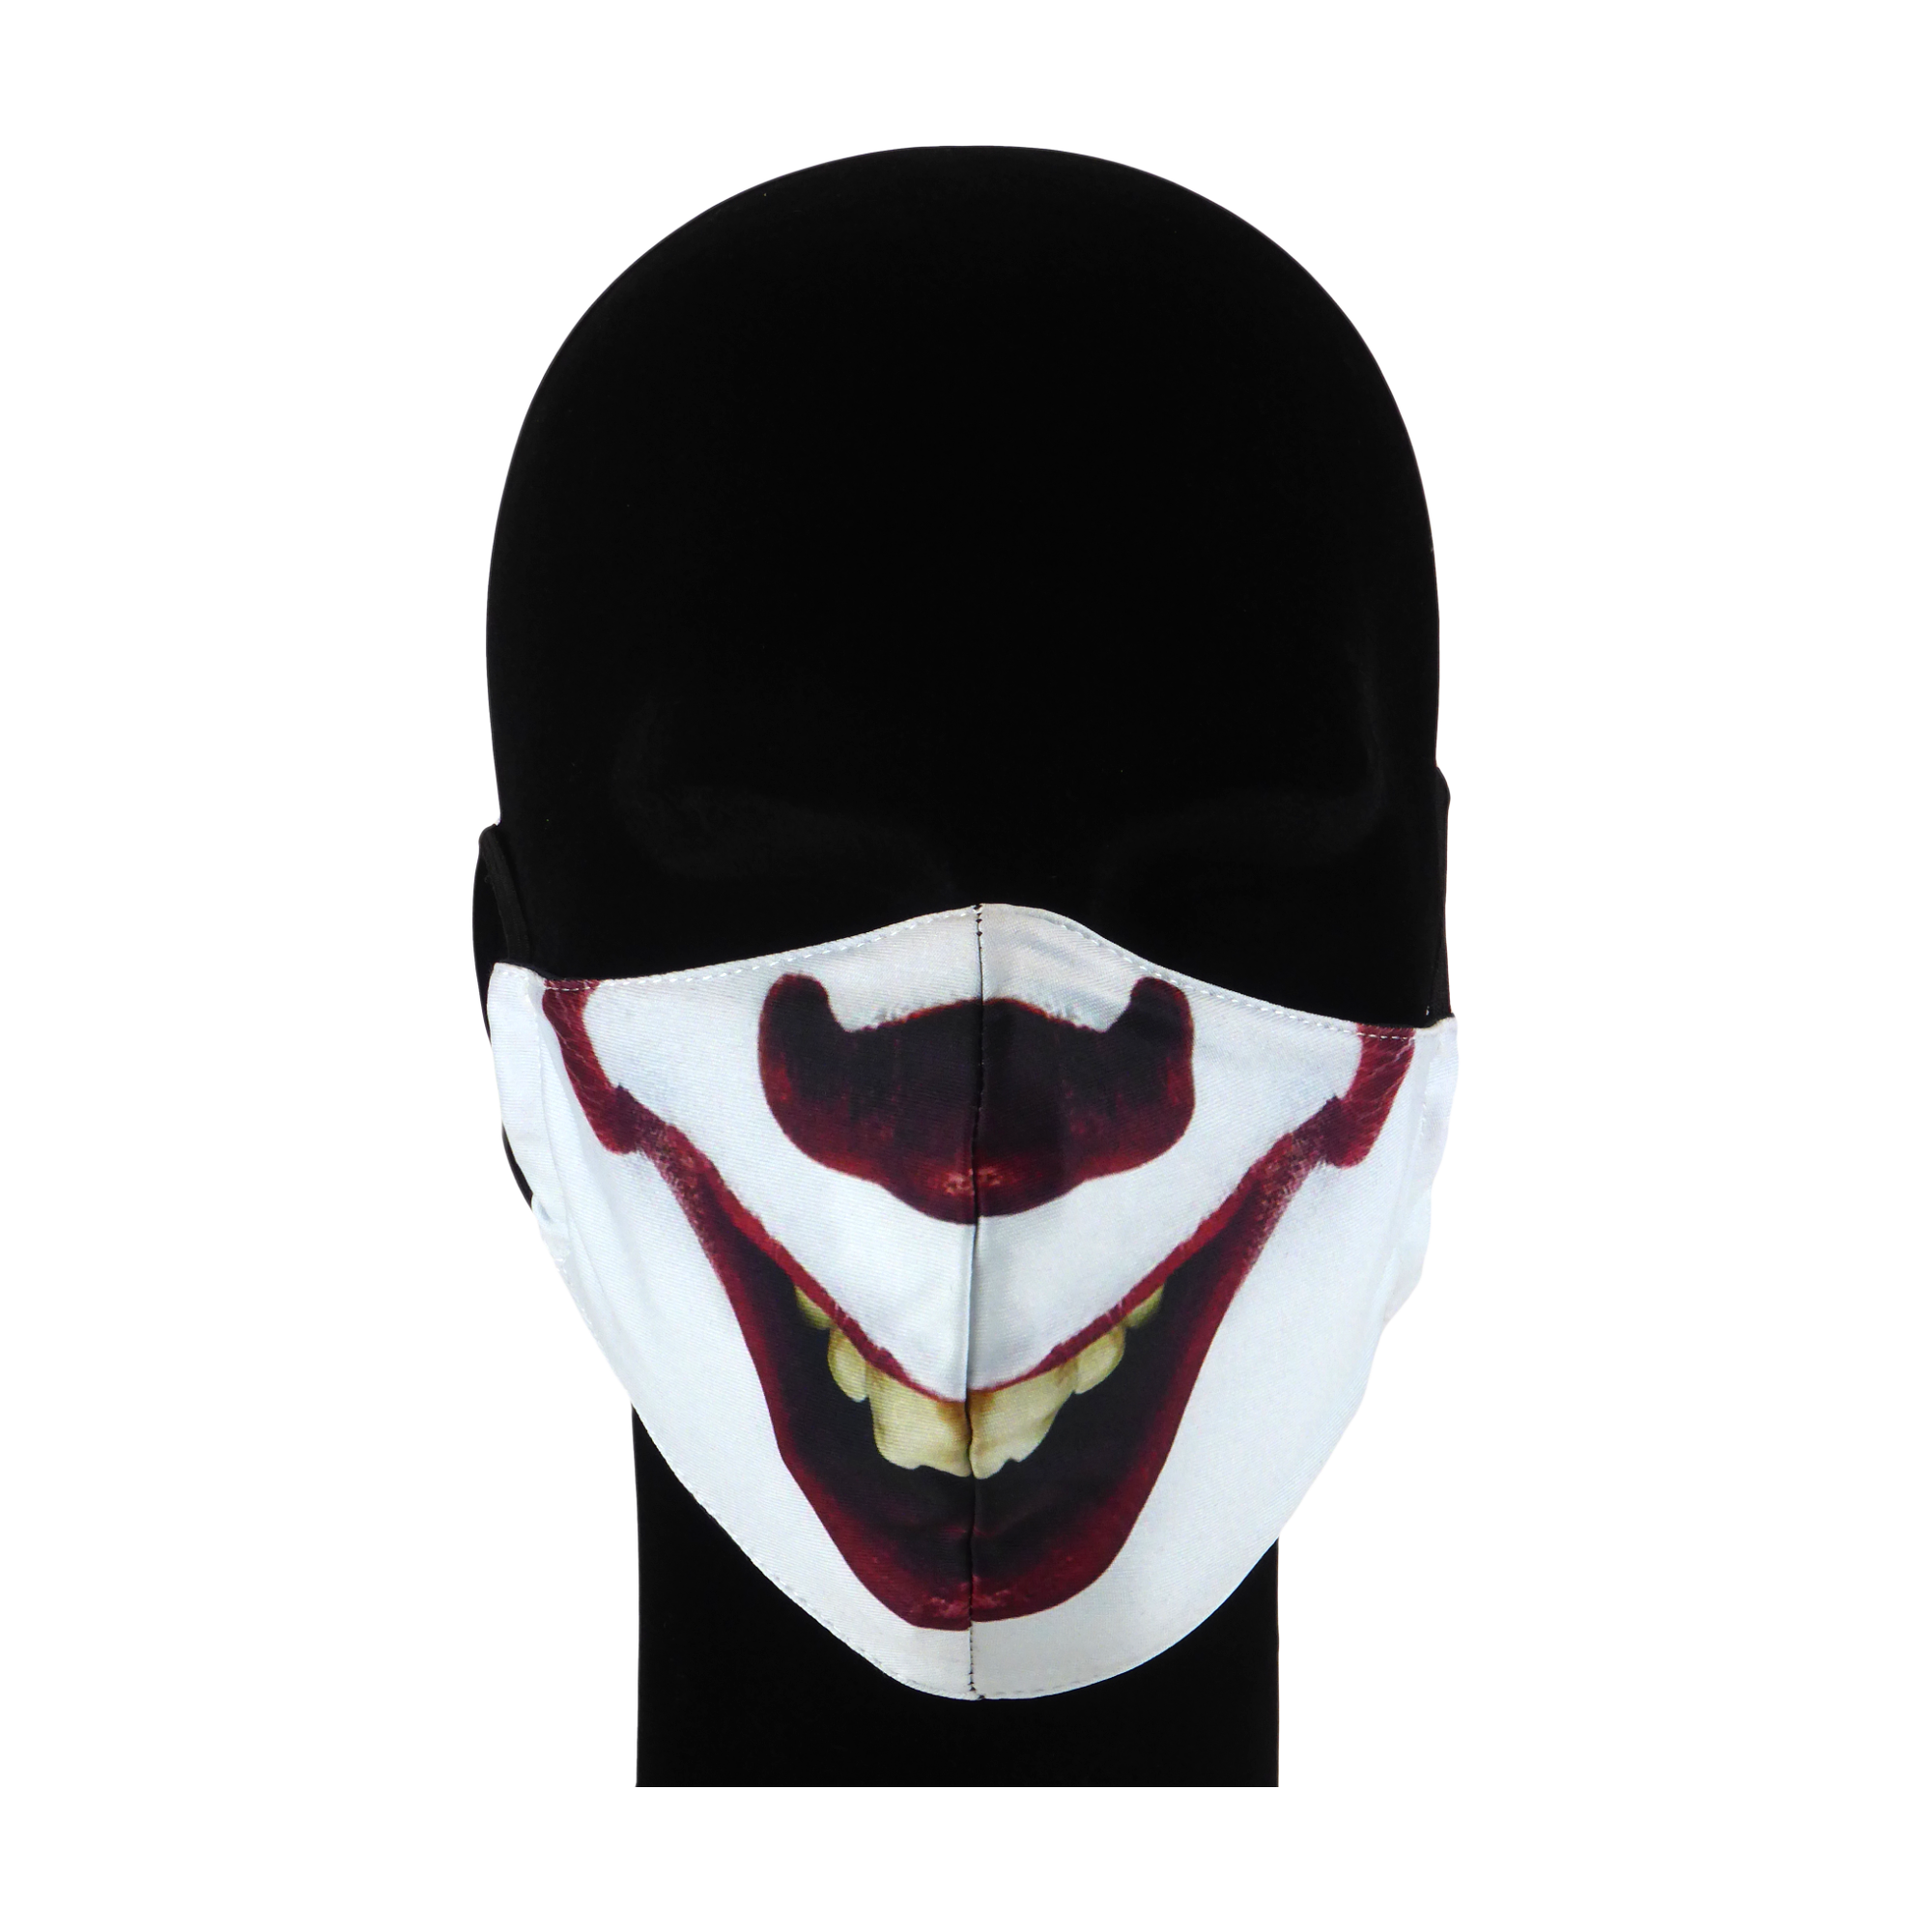 King Cobra Store 100% polyester mouth and face mask protection against dust pollen pollution or airborne covid 19 corona viruses elastic straps comfortable breathing and wearing reusable washable inspired by thriller horror movie film Warner Bros Stephan King roman It clown Pennywise balloon